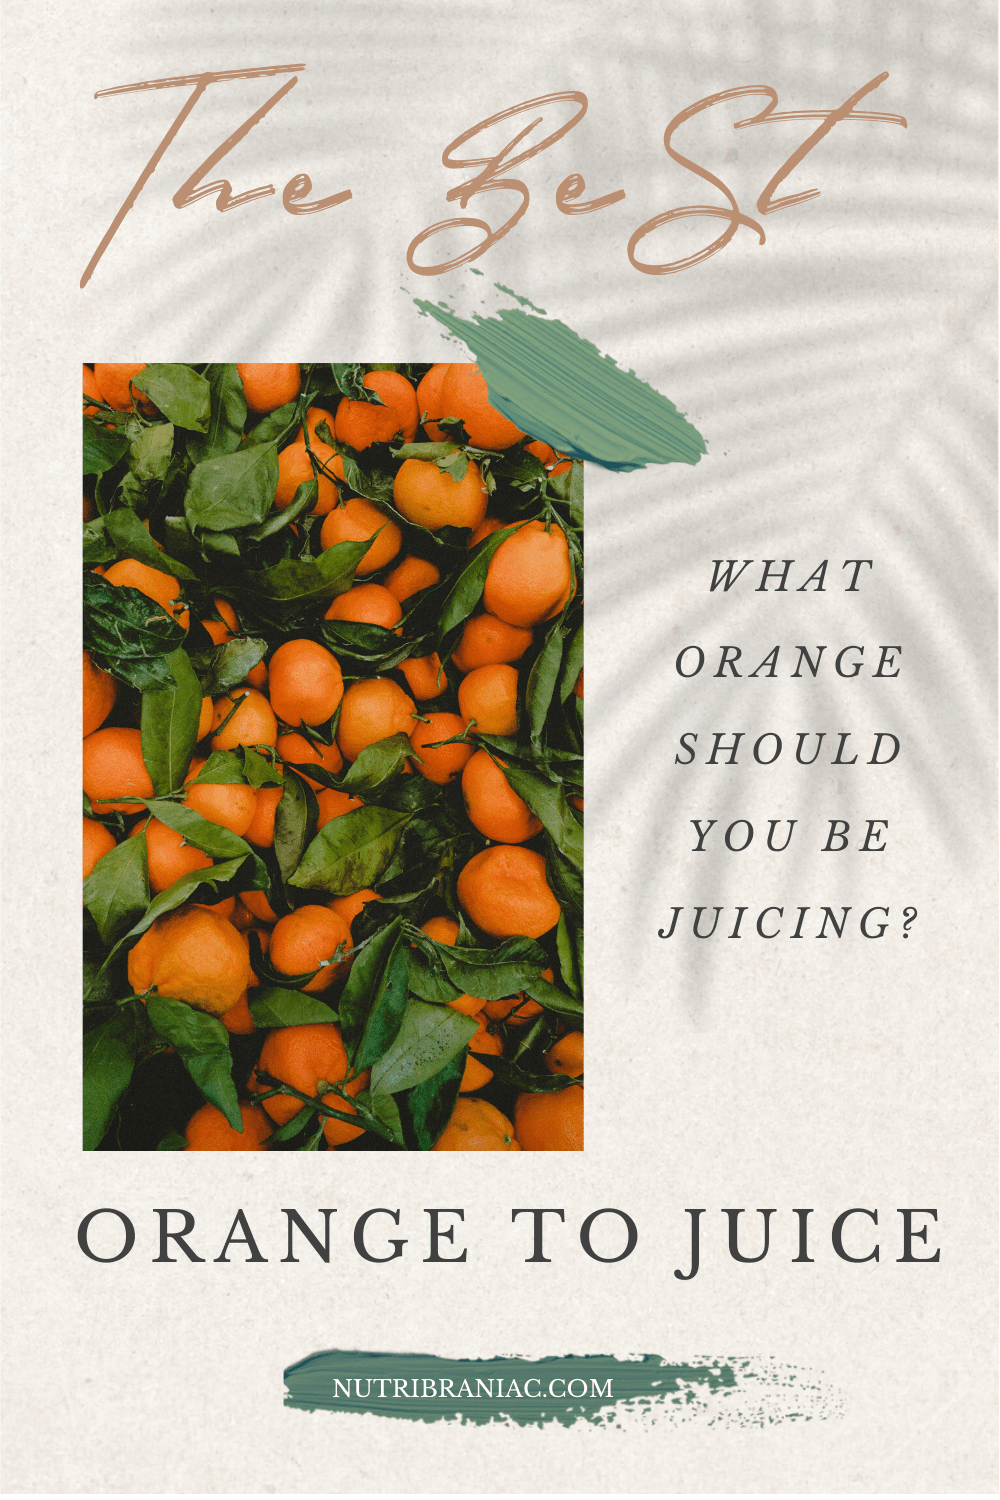 6a845ead5f6f48d308a8b609f7e39e5b - How To Get The Most Juice Out Of Oranges